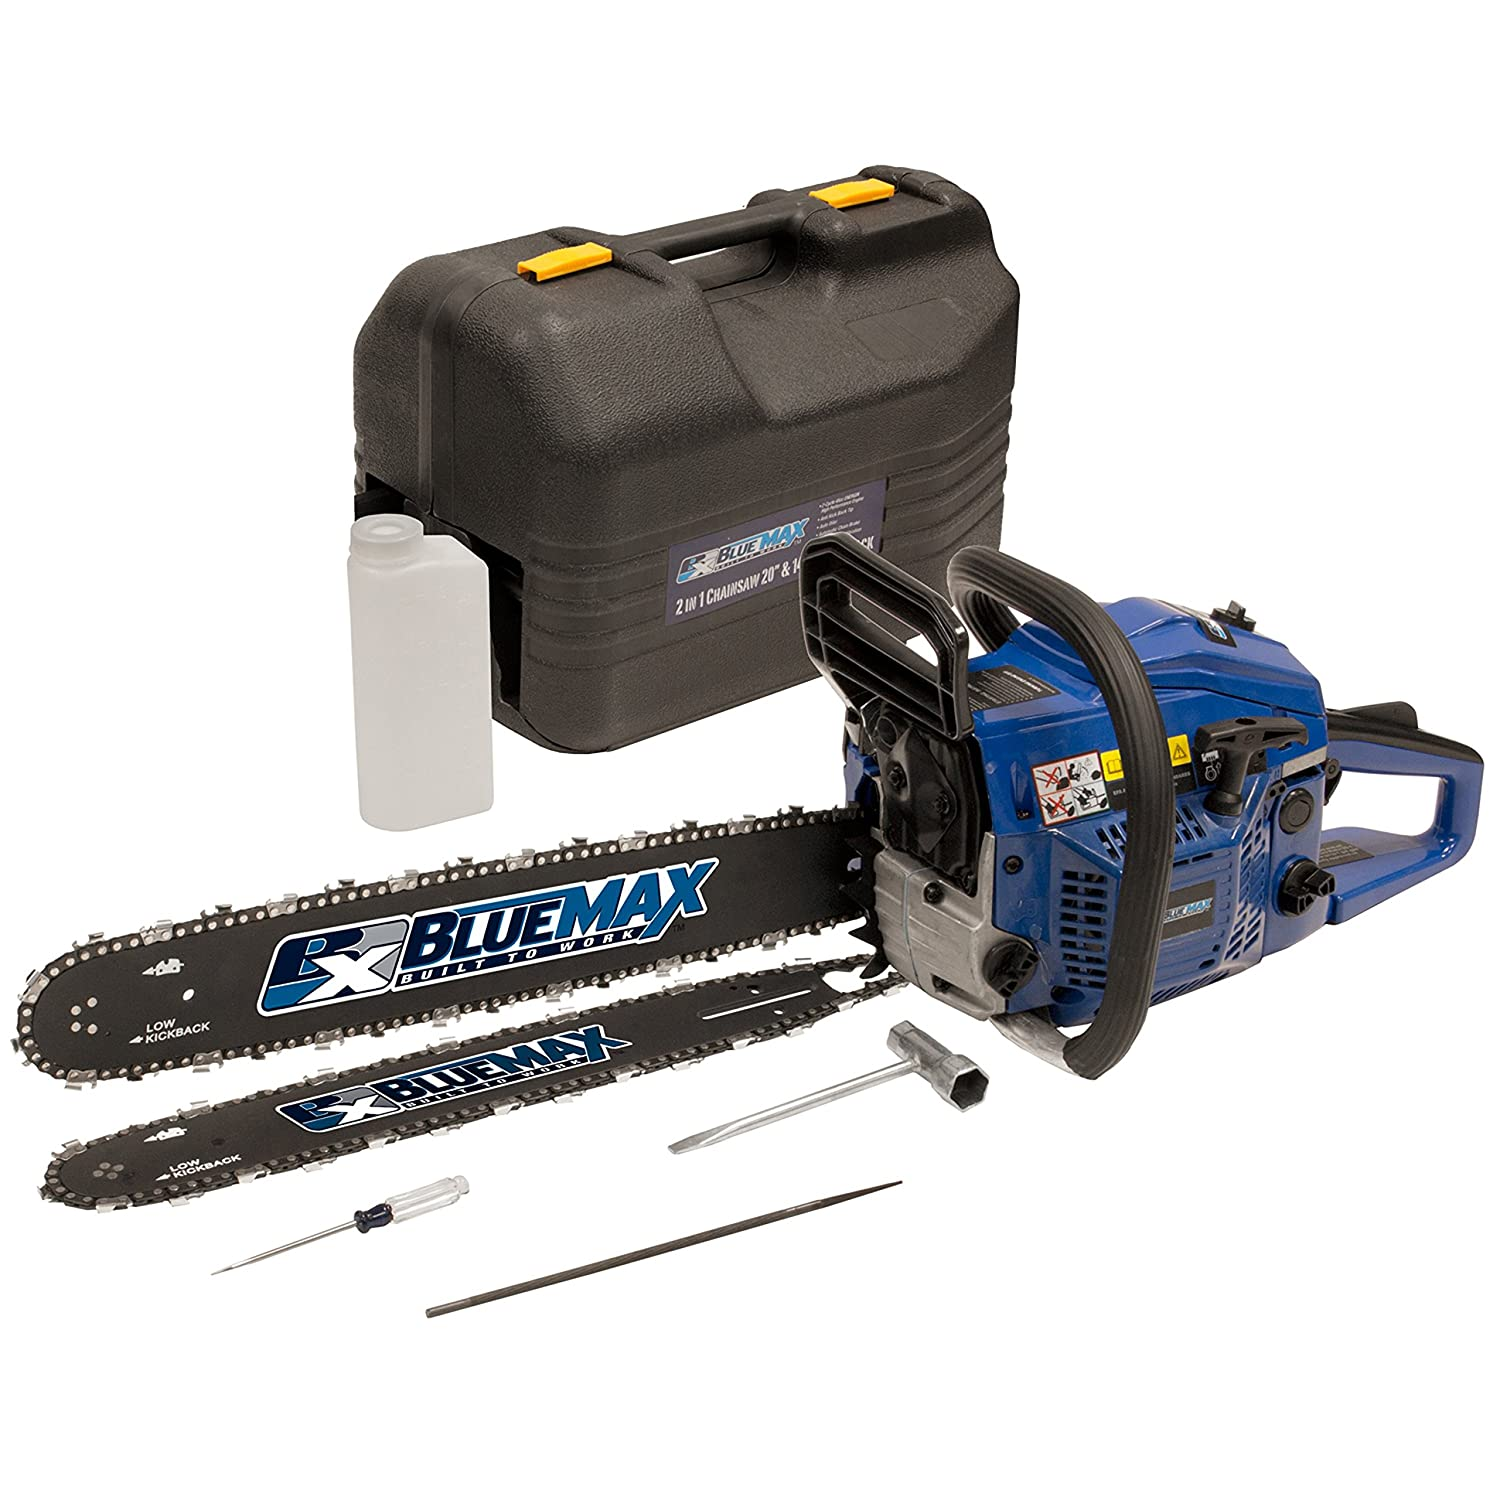 8. Blue Max 8902 - Affordable Gas Chainsaw